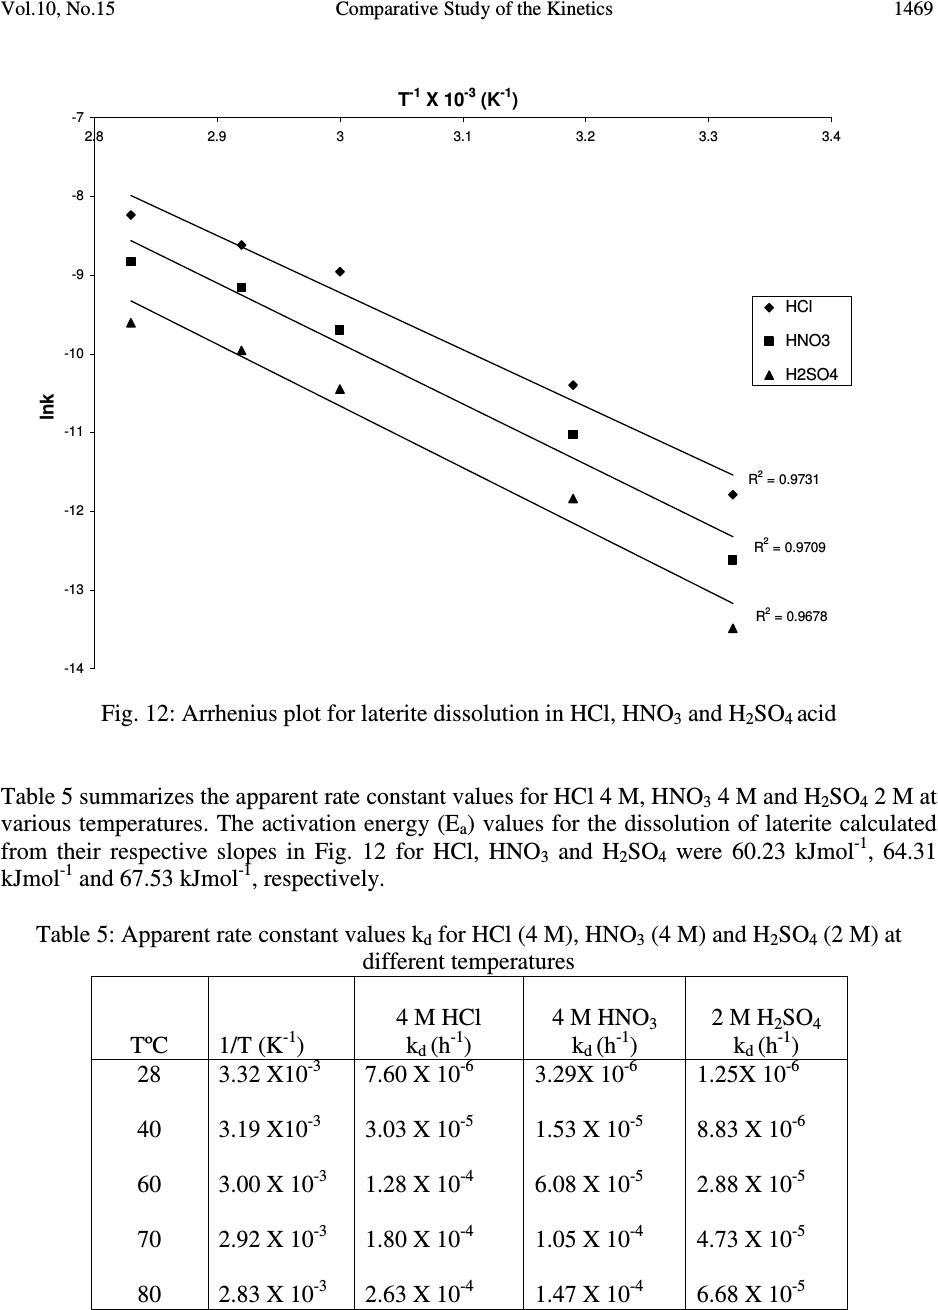 comparative study of the concentration dependence Absolute bioavailability compares the bioavailability of the active drug in systemic circulation following non-intravenous administration (ie, after oral, ocular, rectal, transdermal, subcutaneous, or sublingual administration), with the bioavailability of the same drug following intravenous administration.